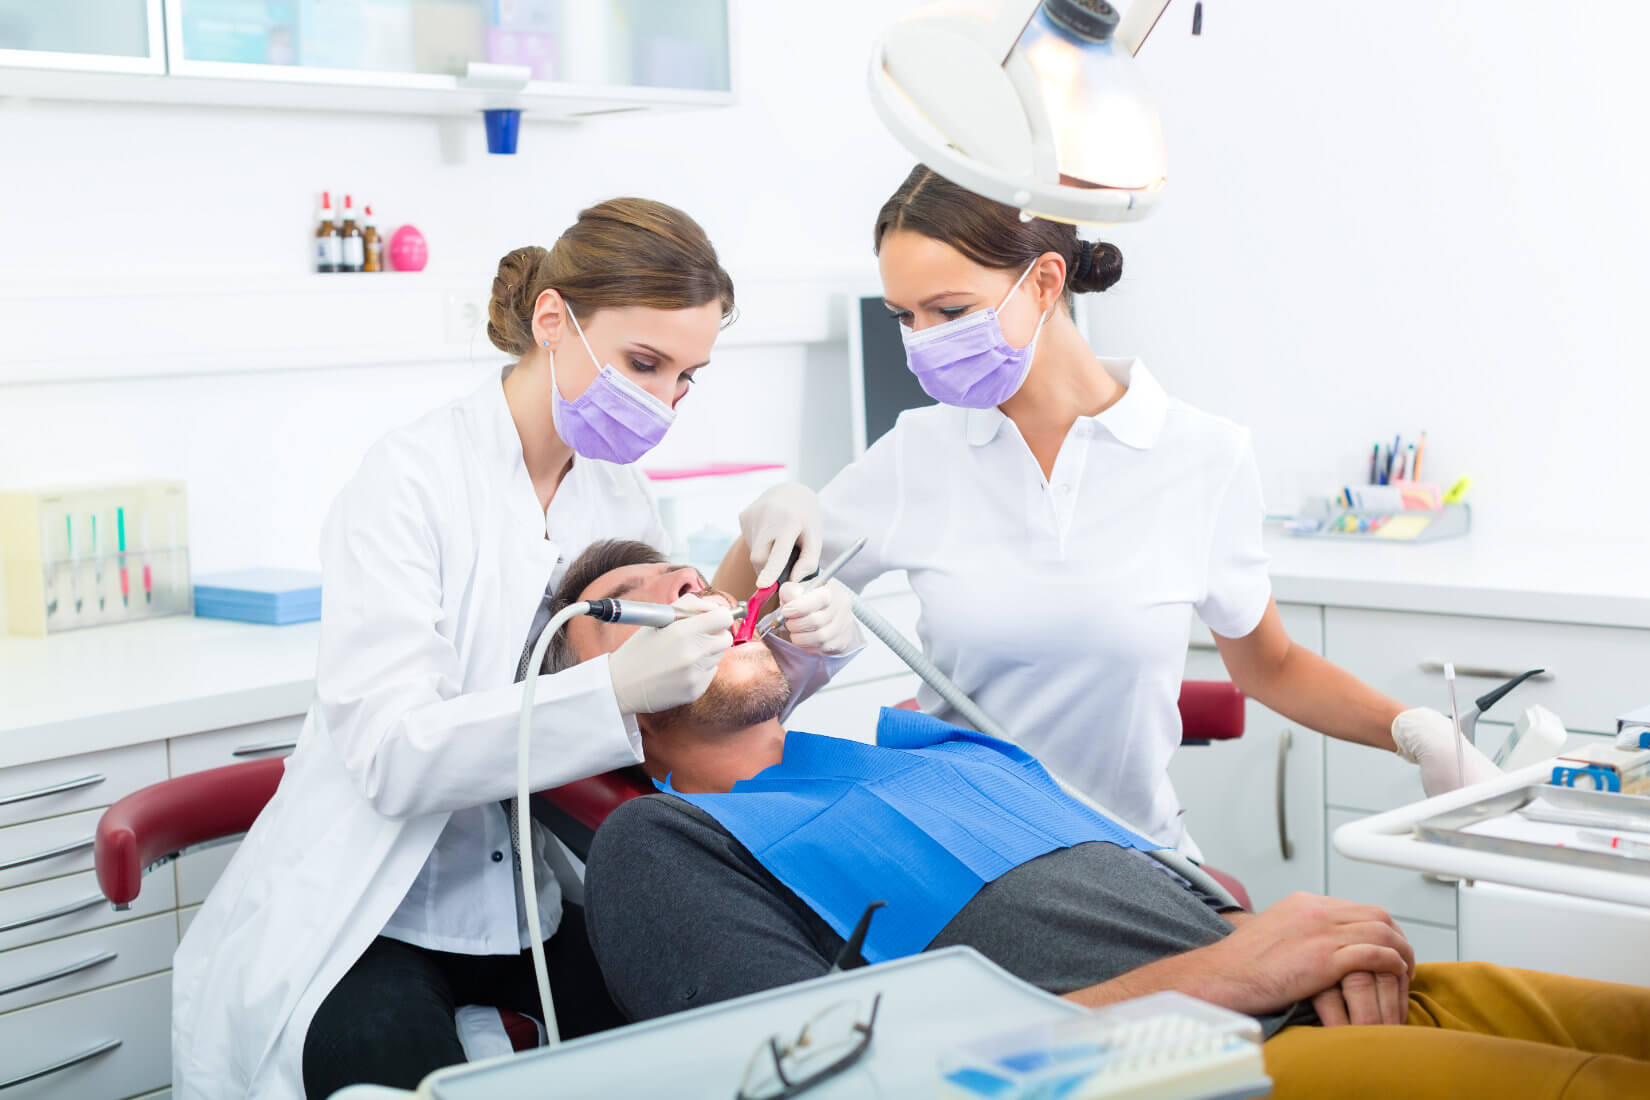 E-learning first aid courses, suitable online training for dentists